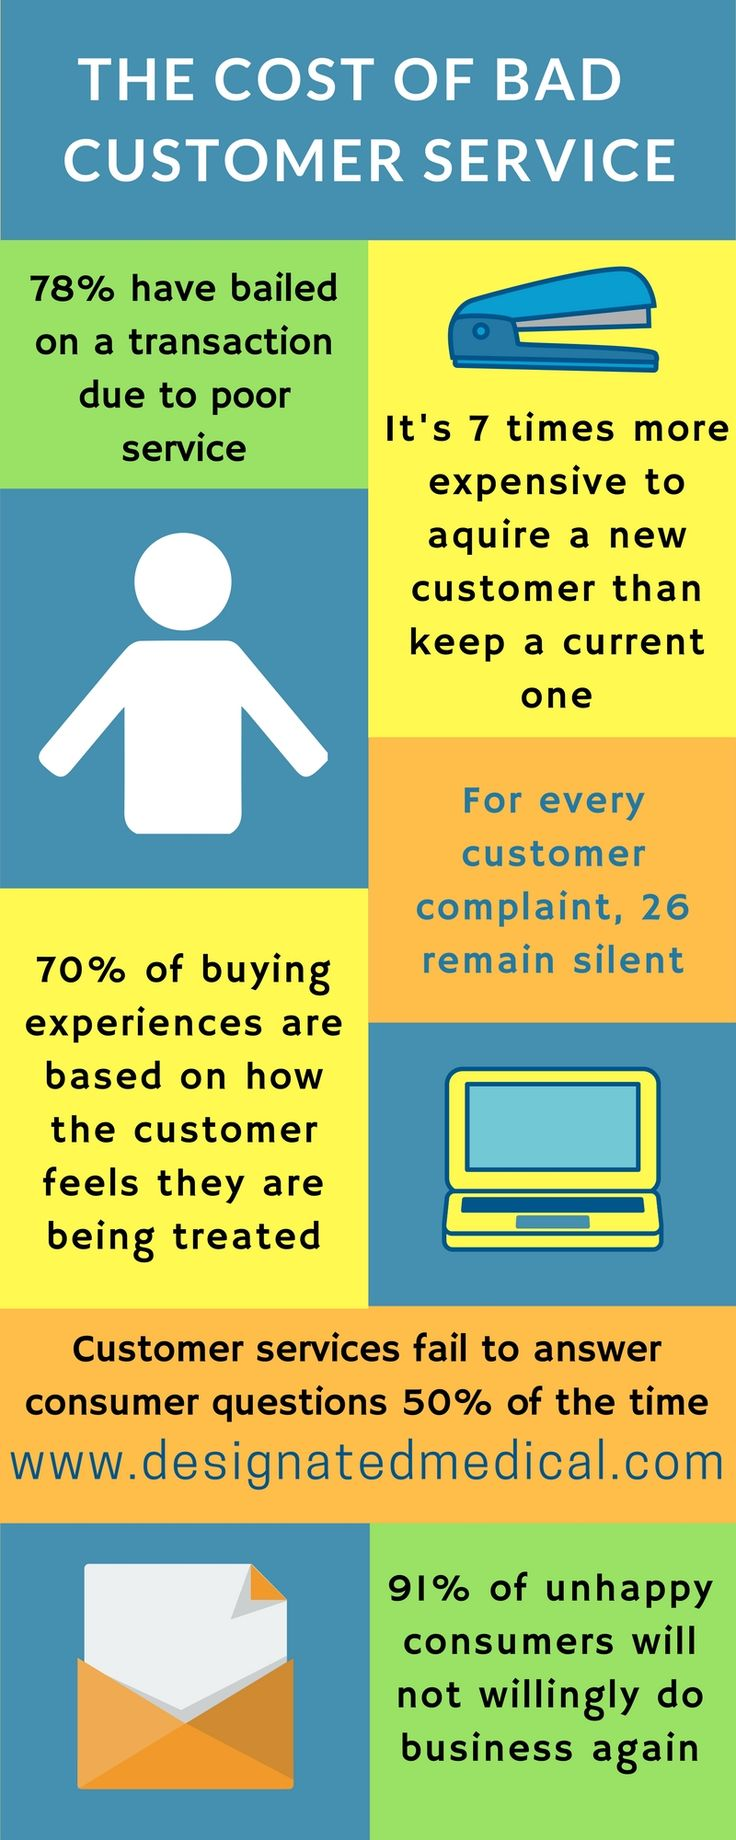 customer service in tourism The travel, tourism and hospitality industries are no strangers to the importance of service excellence but today, with increasing global competition and reducing discretionary spend, business survival is more than ever dependent on repeat business and positive referrals.